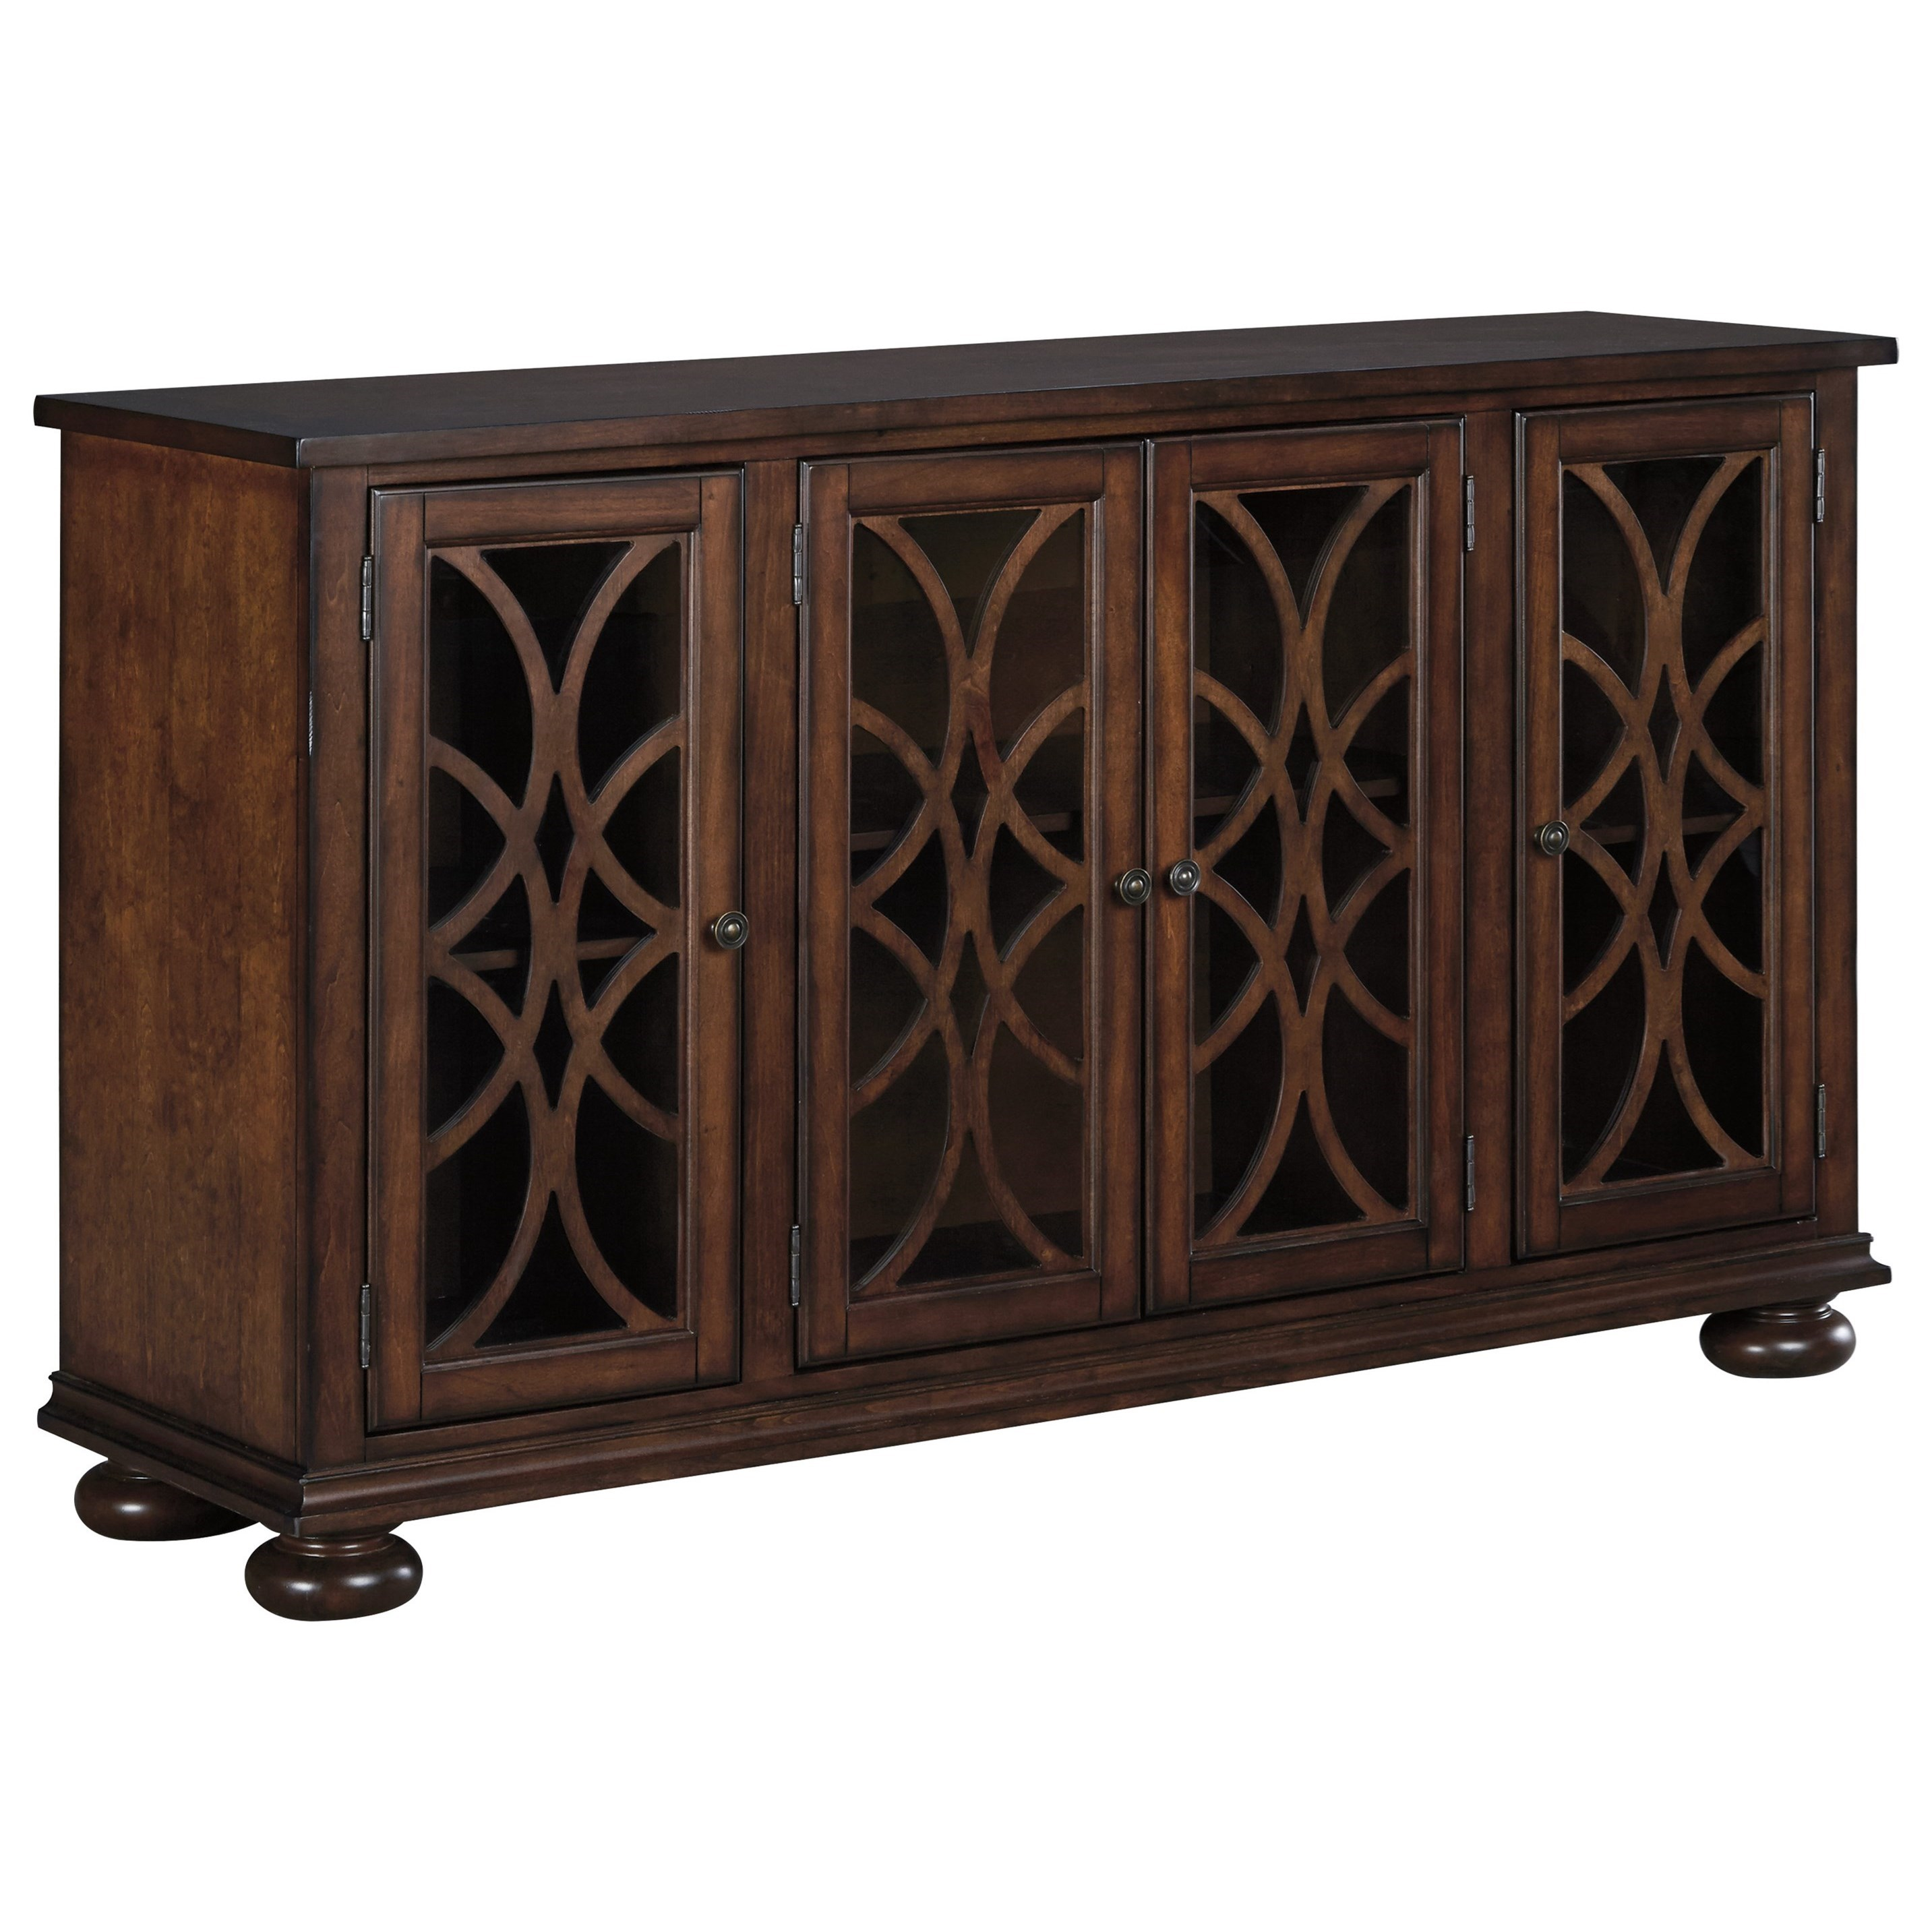 Baxenburg Dining Room Server by Signature Design by Ashley at Lapeer Furniture & Mattress Center